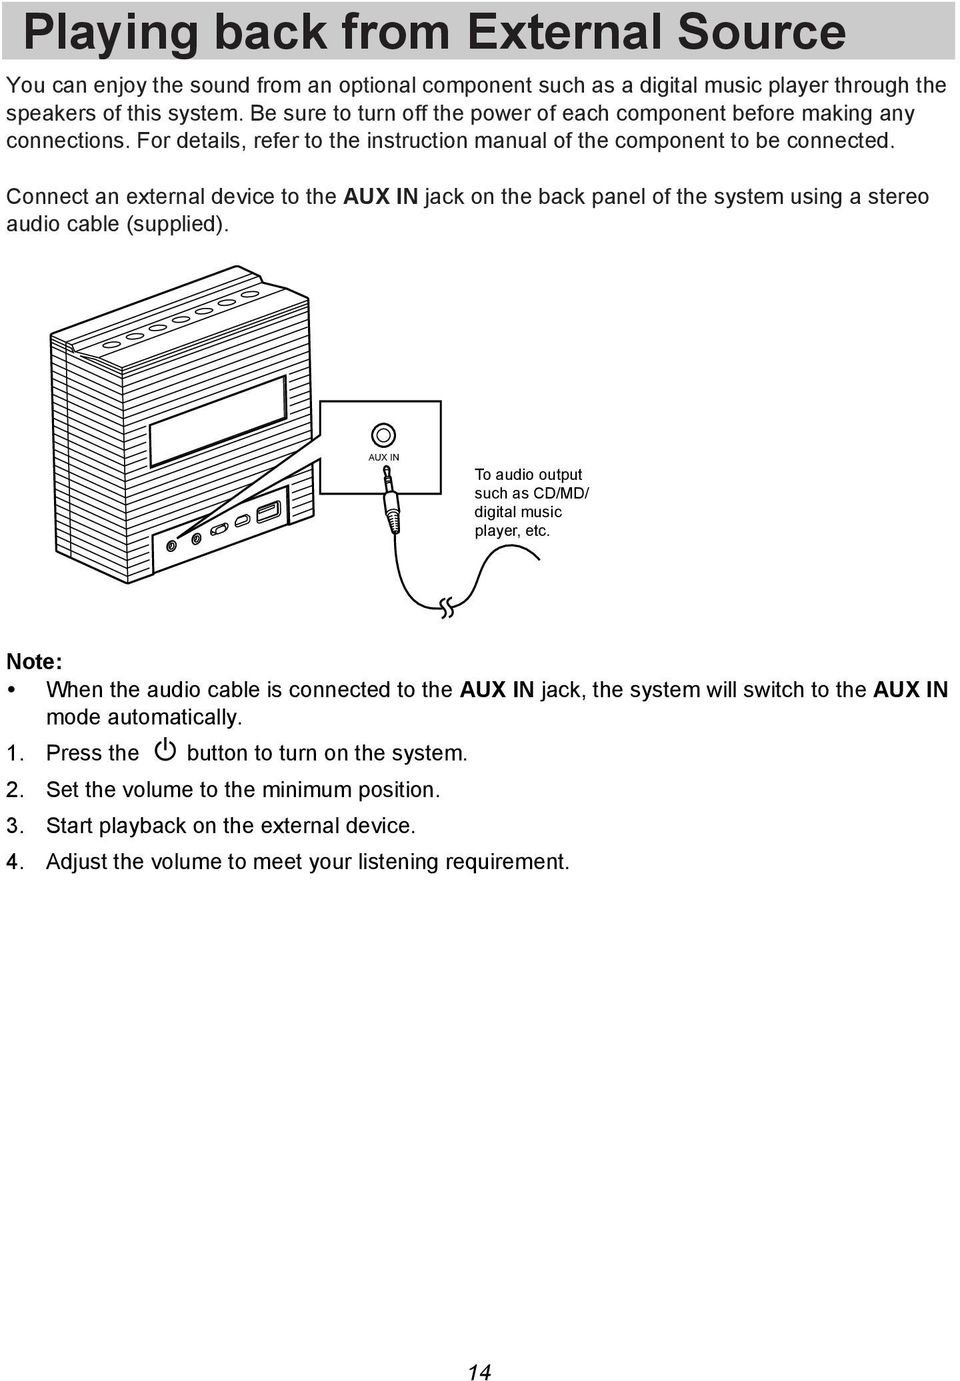 Connect an external device to the AUX IN jack on the back panel of the system using a stereo audio cable (supplied). AUX IN To audio output such as CD/MD/ digital music player, etc.